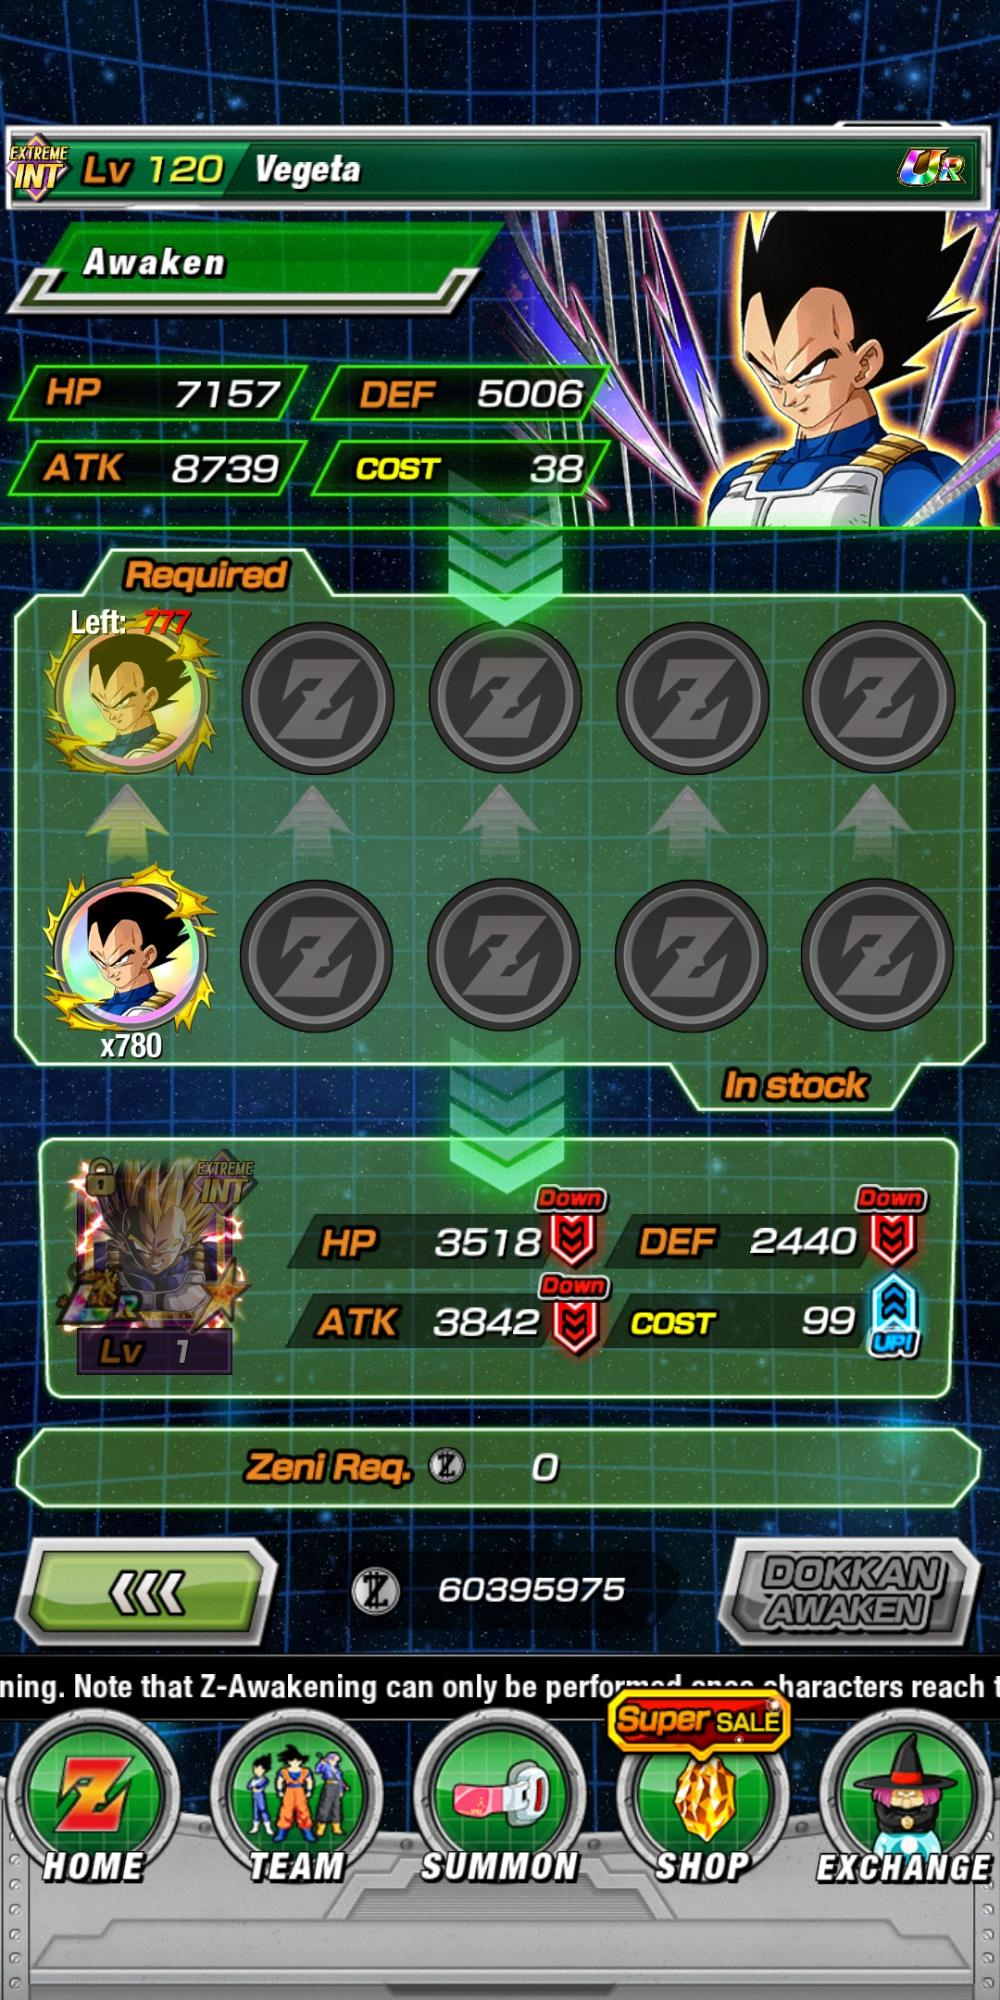 more 3 LRS to finish this xD